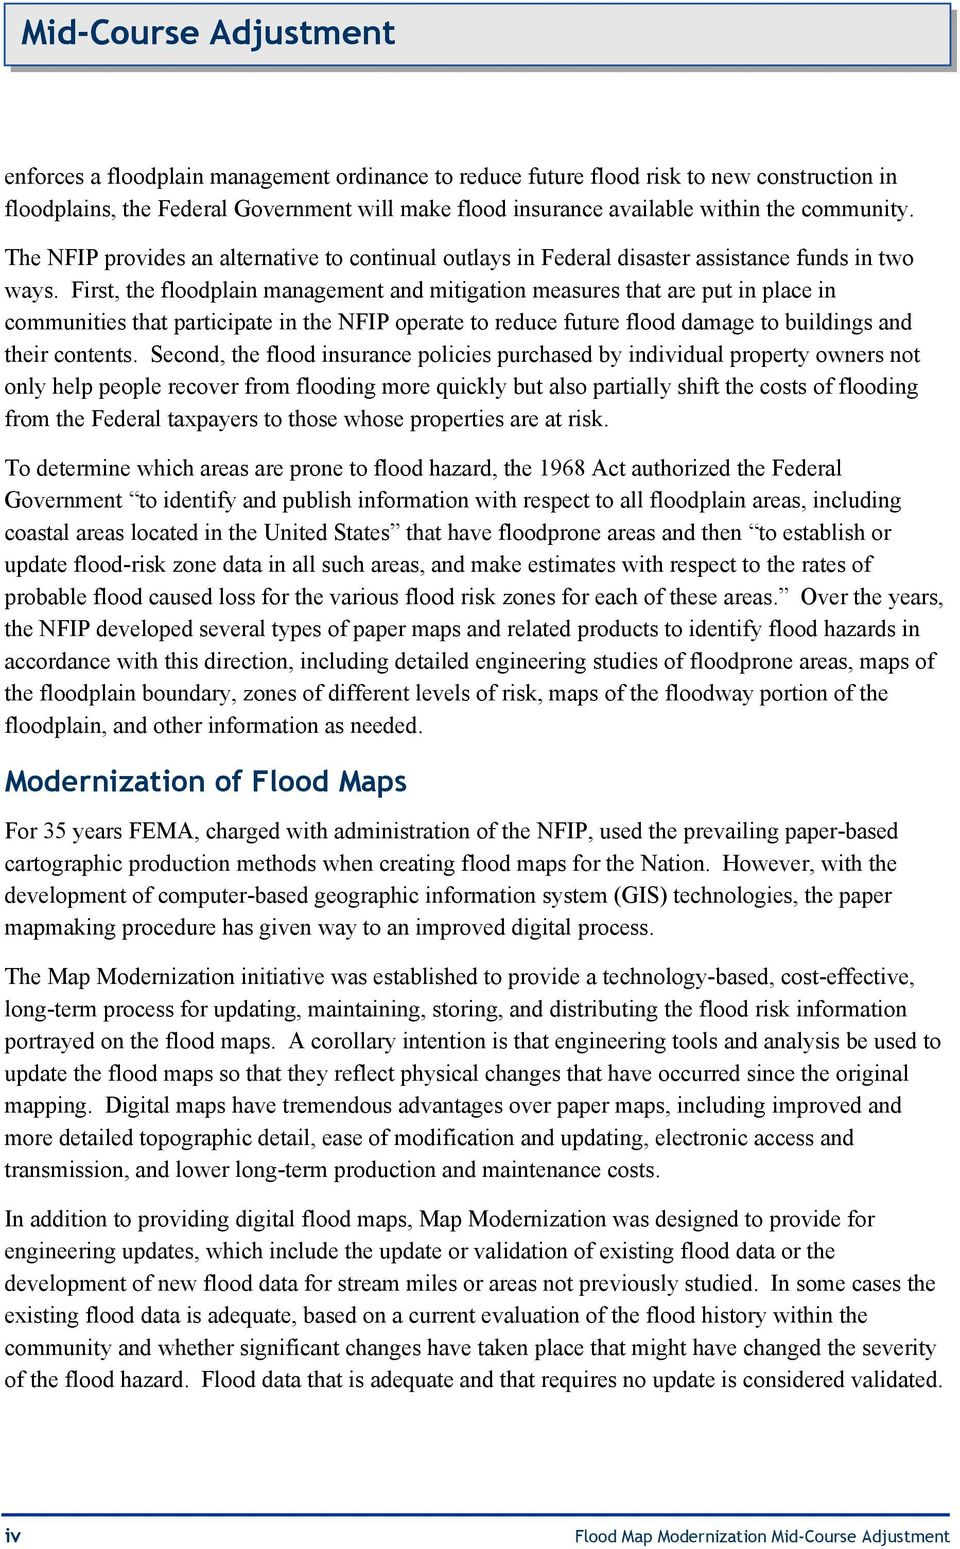 First, the floodplain management and mitigation measures that are put in place in communities that participate in the NFIP operate to reduce future flood damage to buildings and their contents.